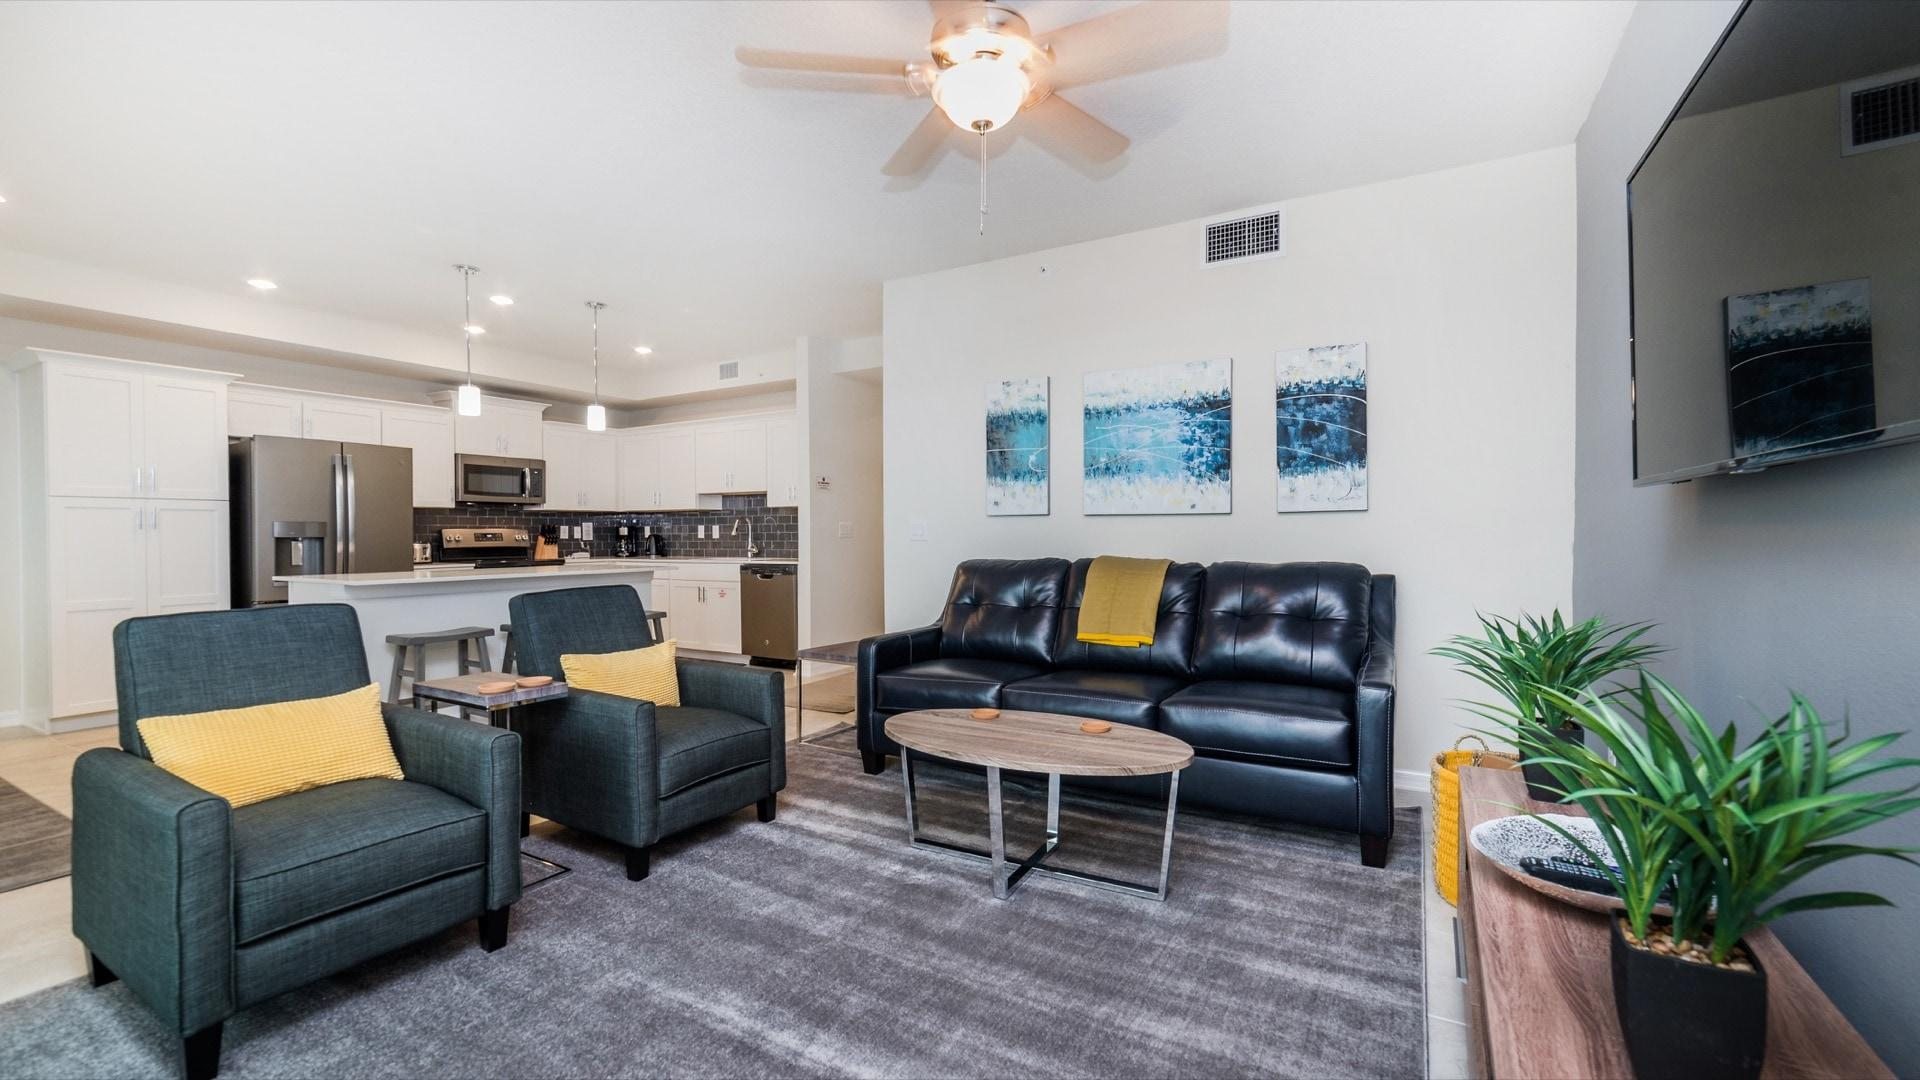 Property Image 1 - Vibrant Modern Condo with Large Living Area Near Disney